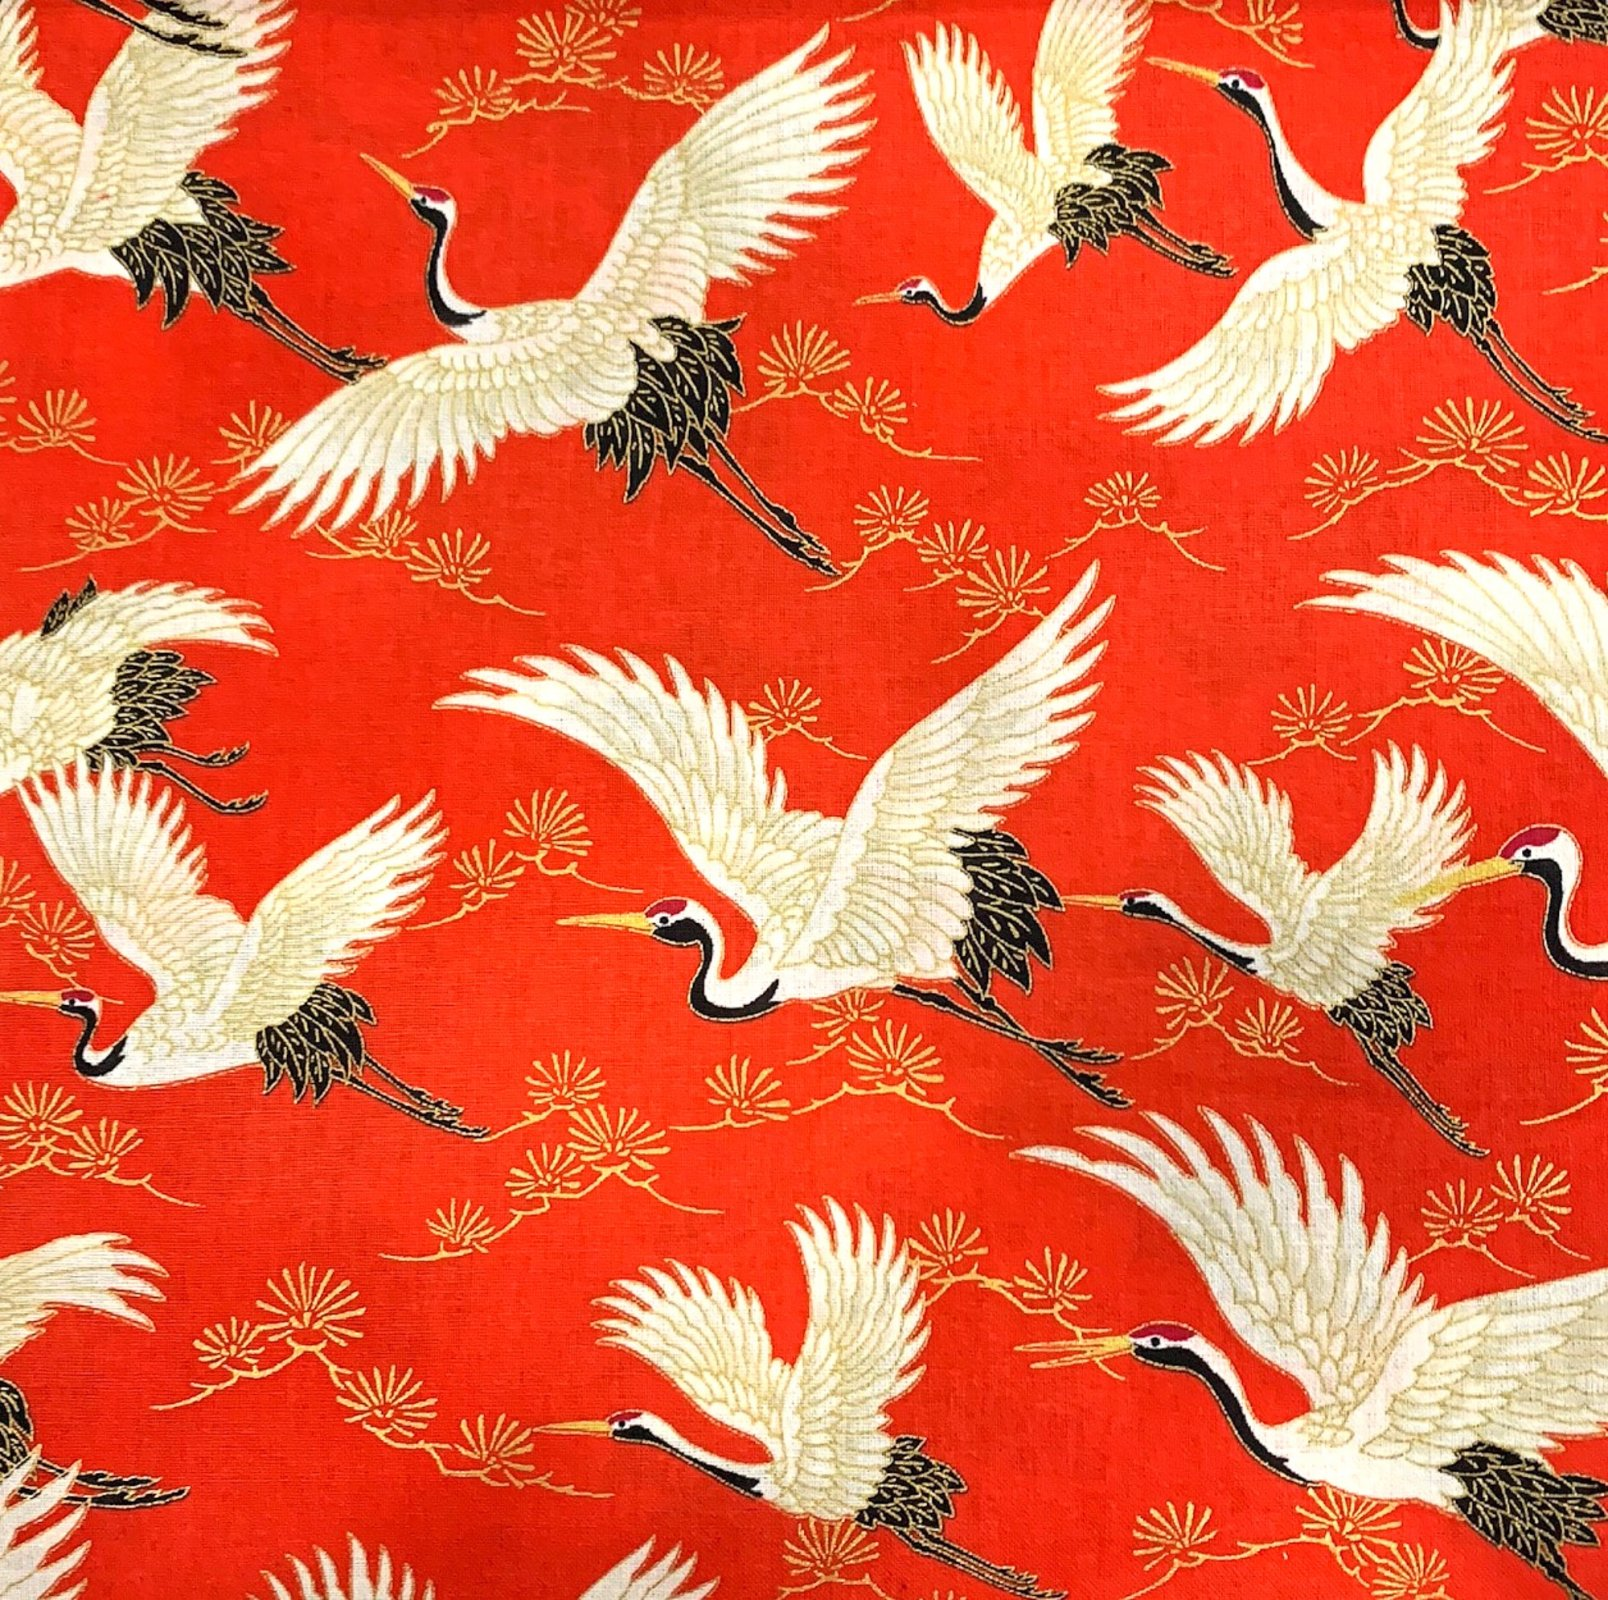 COMING SOON! Japanese Asian Cranes Water Birds Obi Print Cotton Quilt Fabric